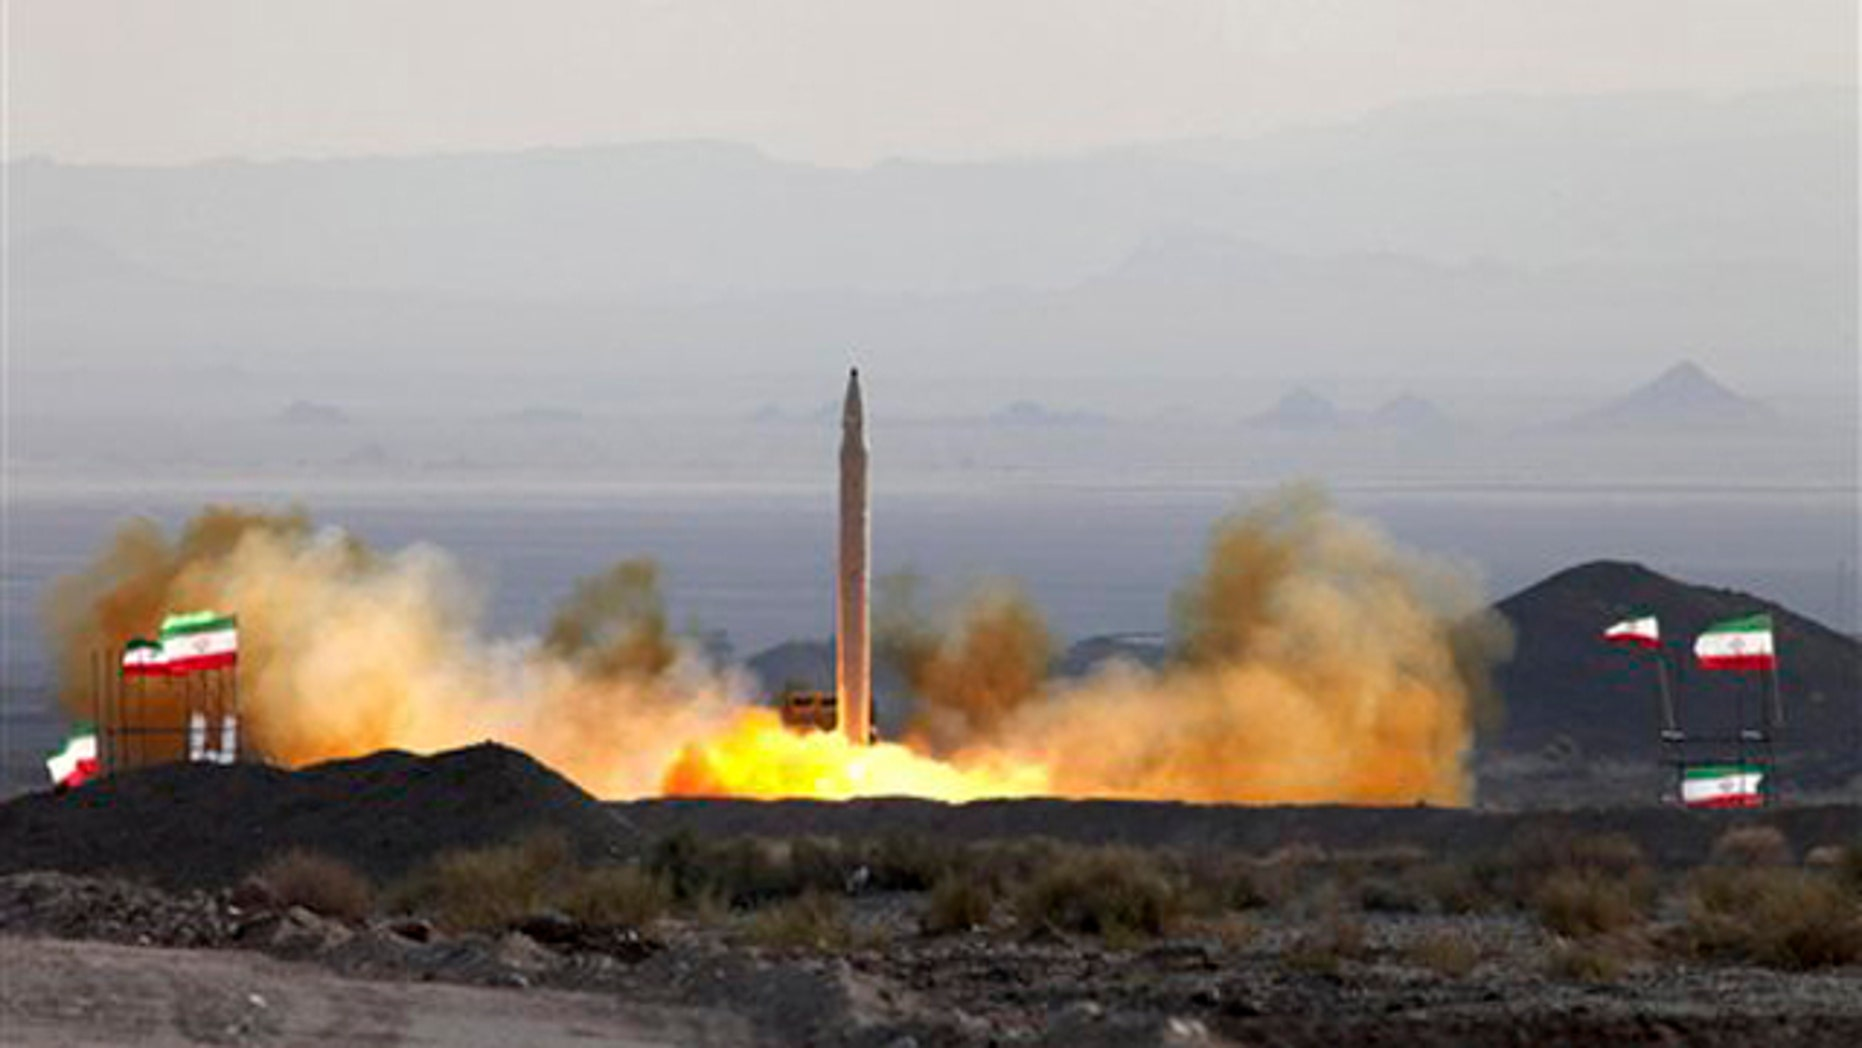 This Aug. 20 photo, by the Iranian Defense Ministry, claims to show the launch of the Qiam-1 liquid-fueled missile by Iranian armed forces, at an undisclosed location. It is an example of Iran's potential retaliatory power. (AP Photo)